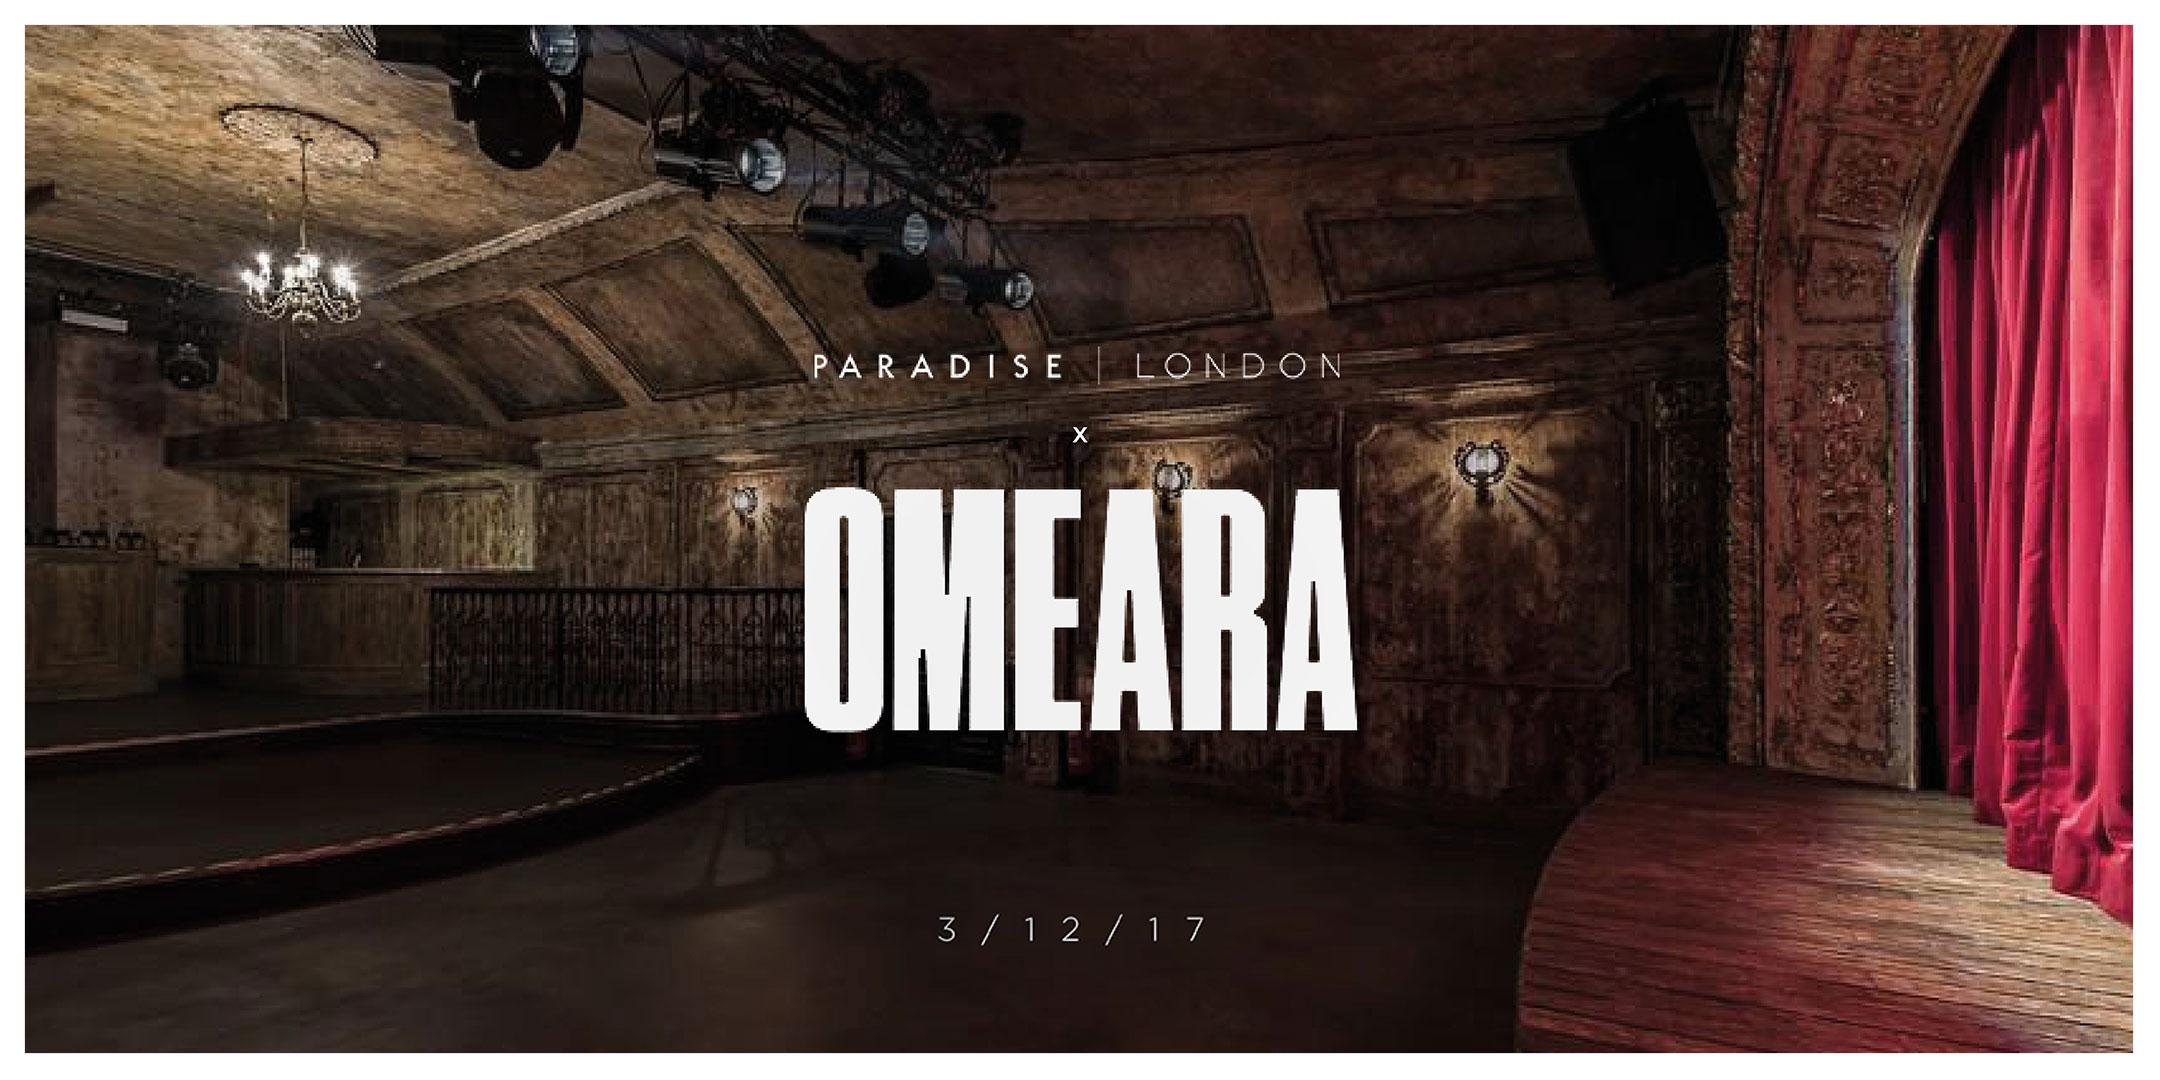 Paradise London Live at Omeara